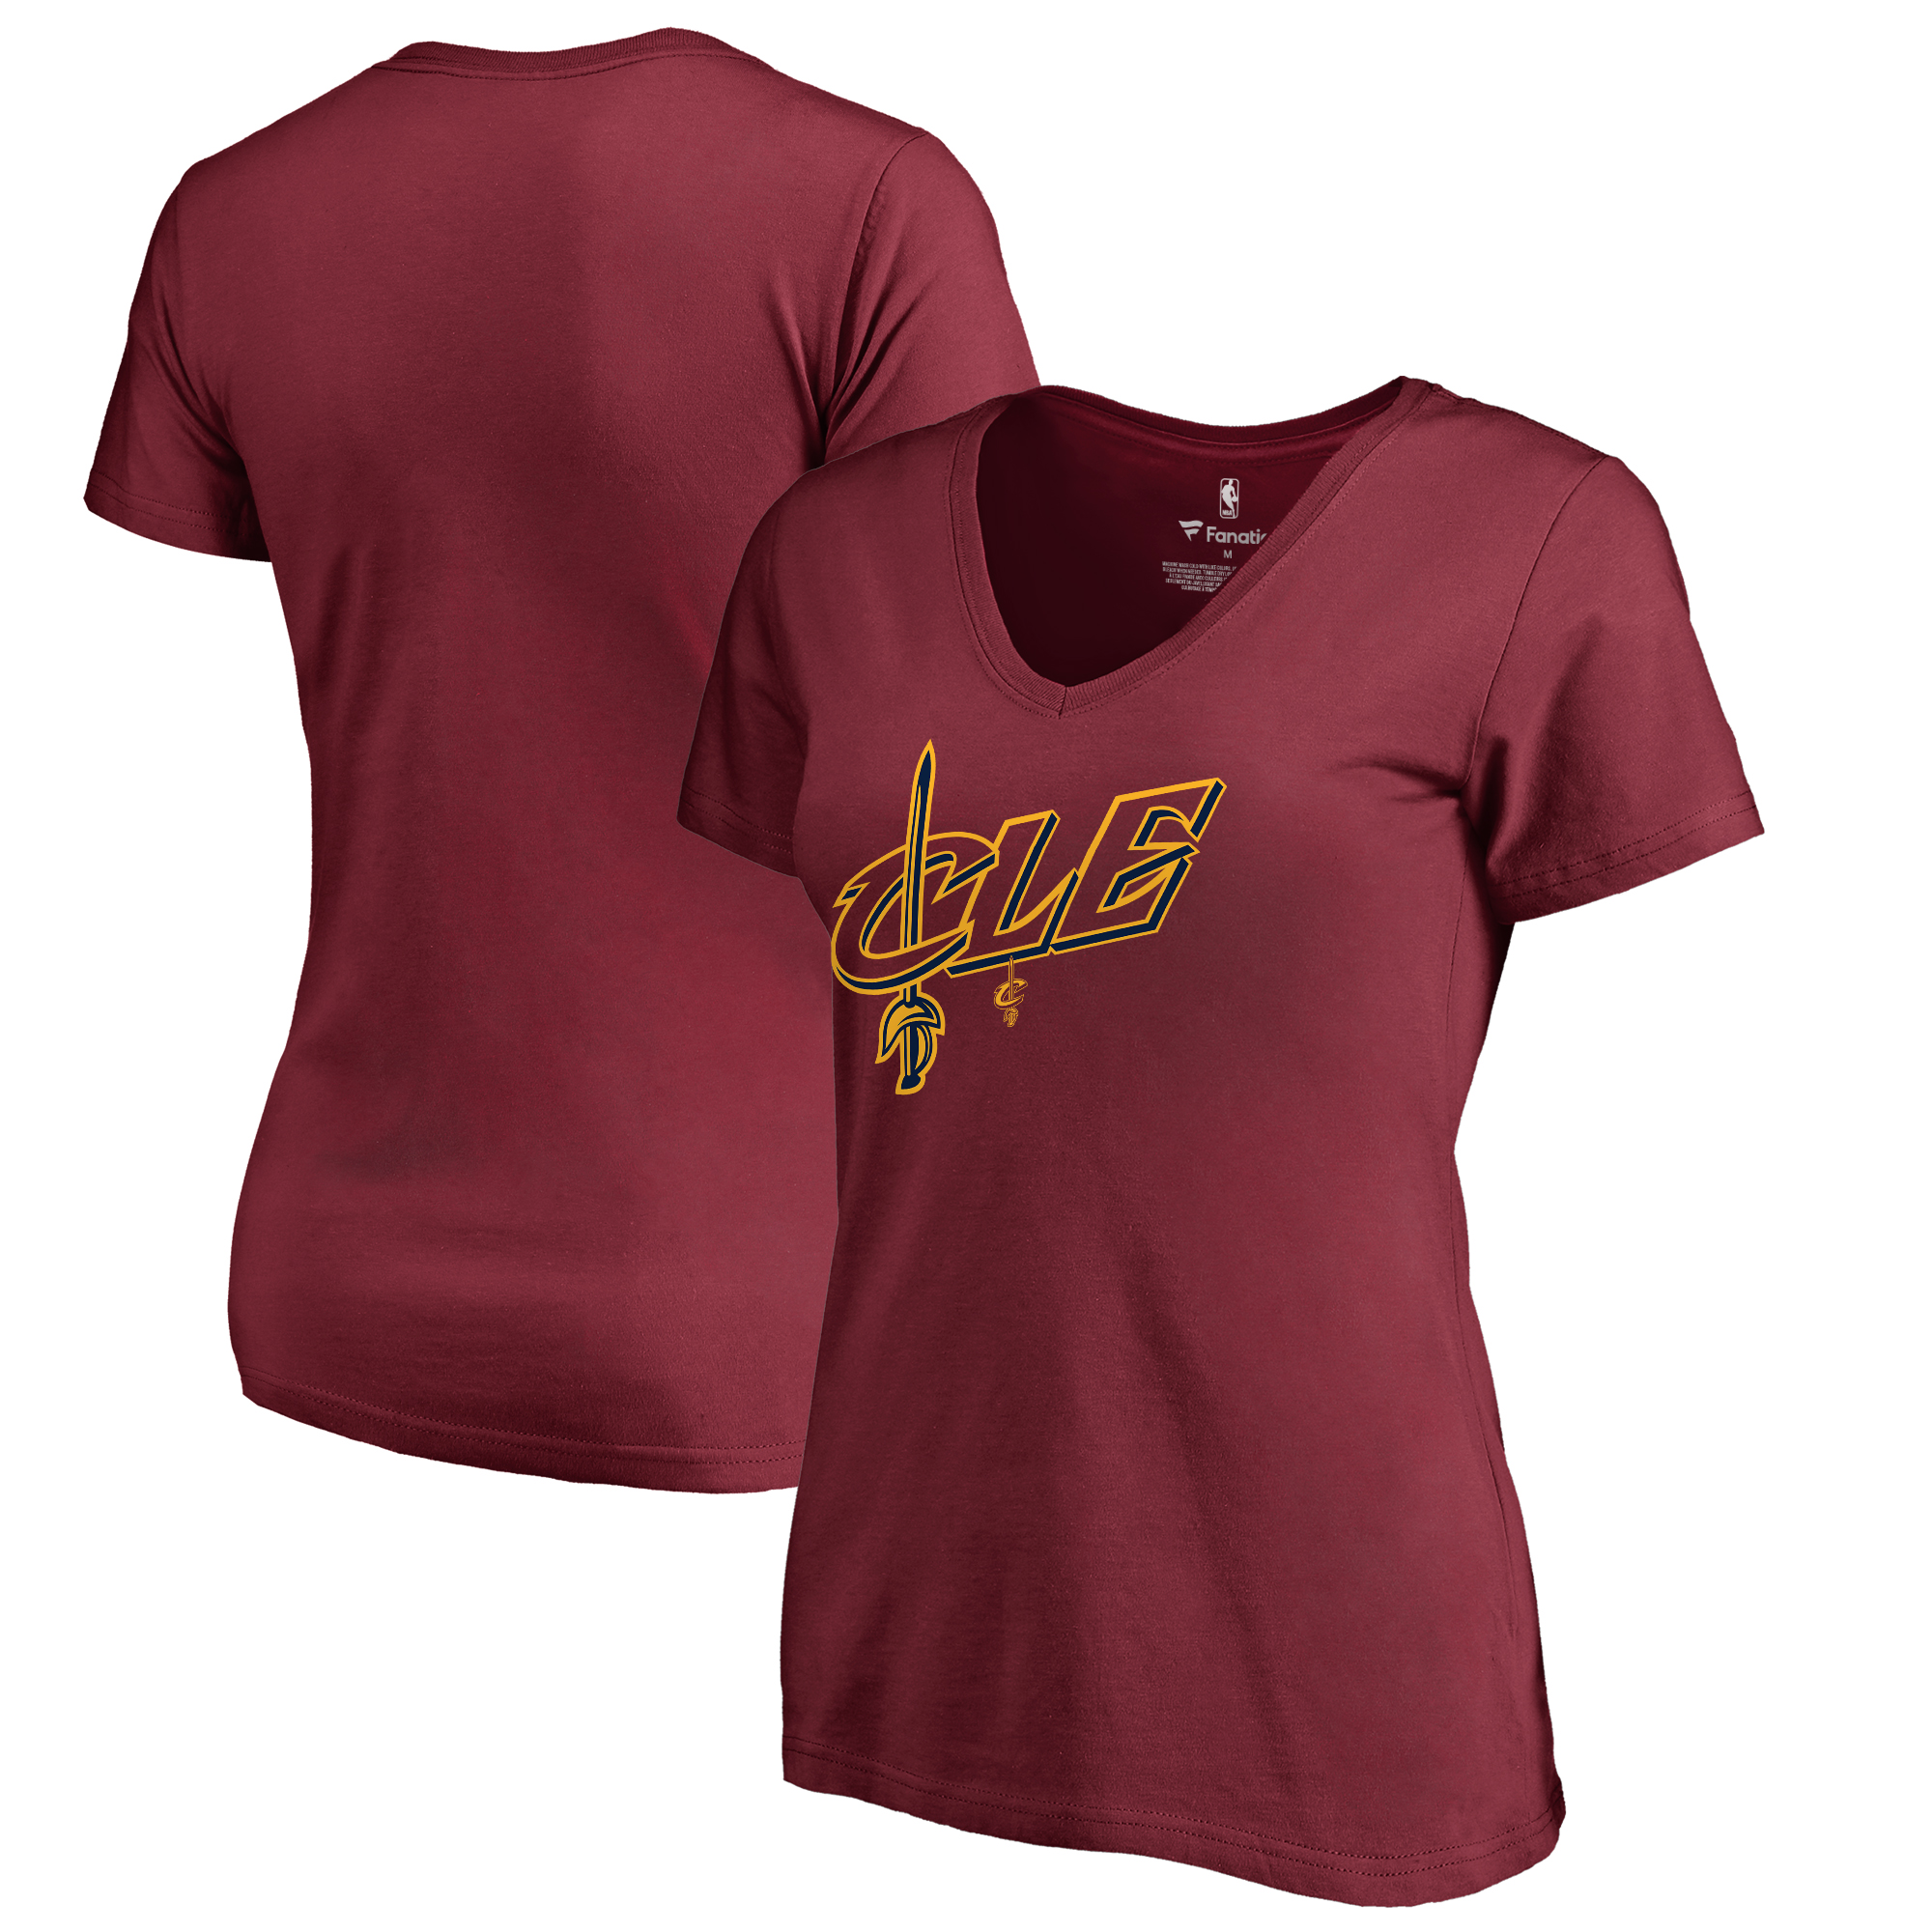 Cleveland Cavaliers Fanatics Branded Women's Plus Sizes CLE Hometown Collection T-Shirt - Wine